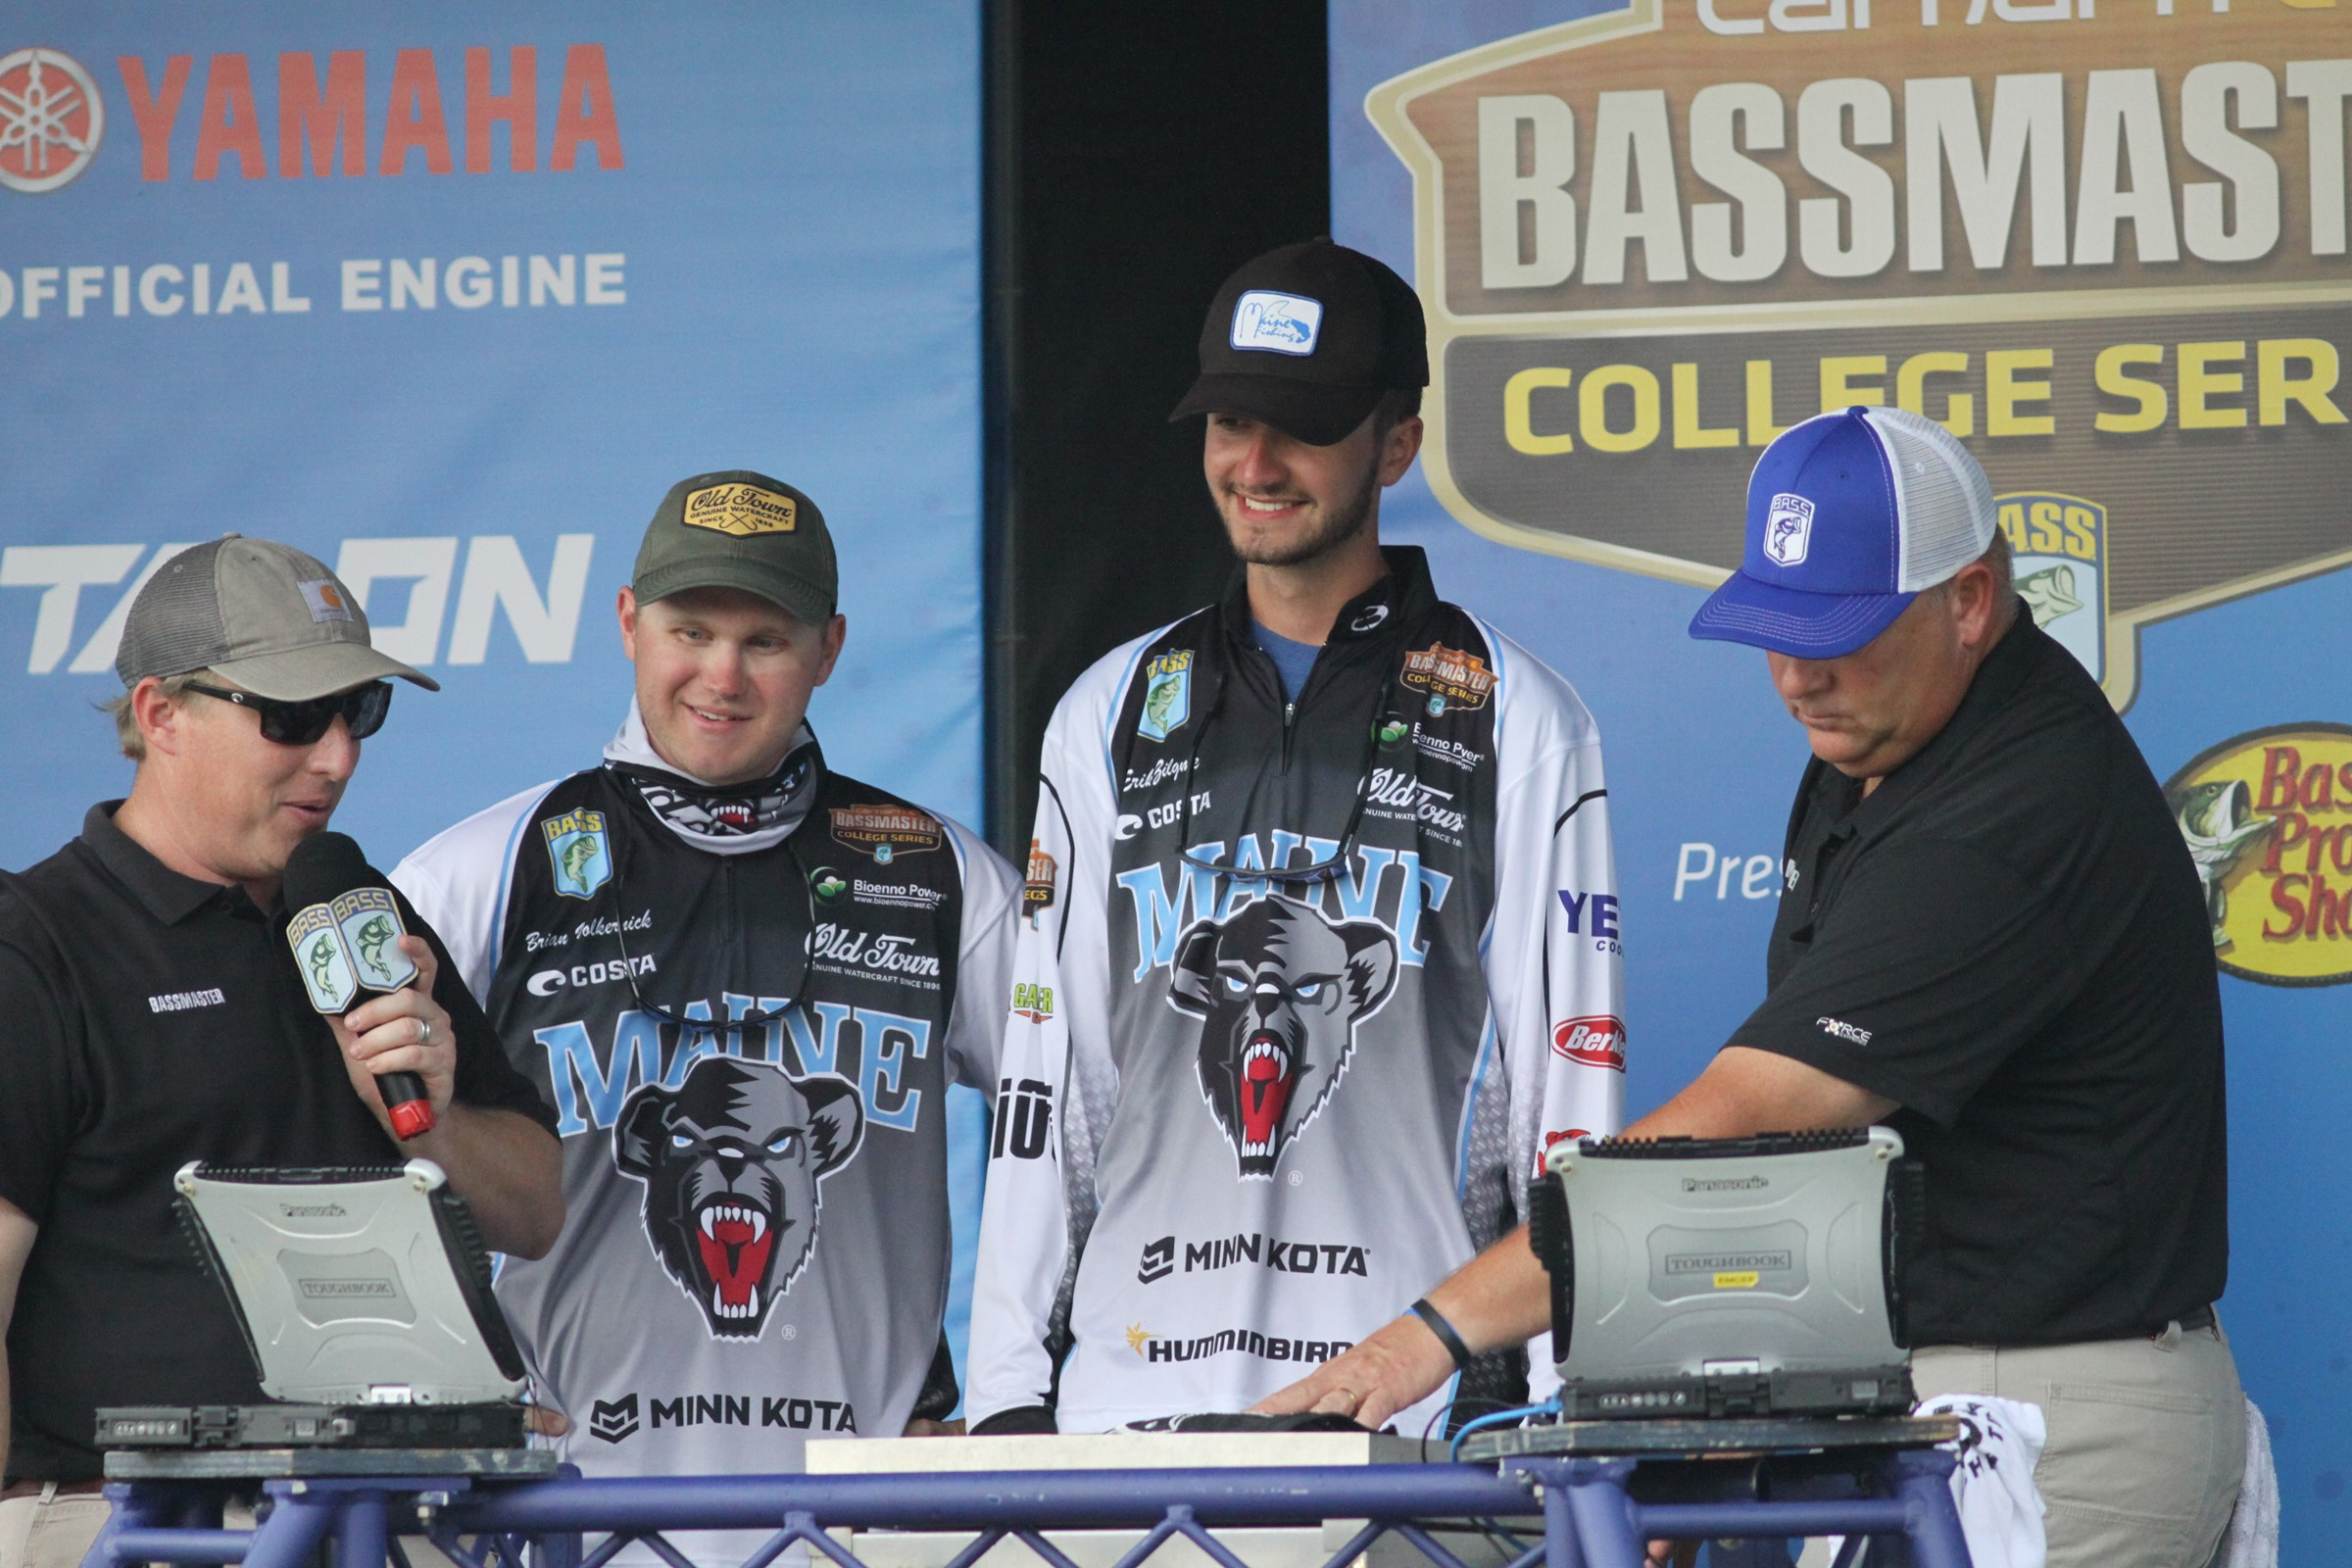 Brian Volkernick and Erik Ziiglme at the Bassmaster College Championship